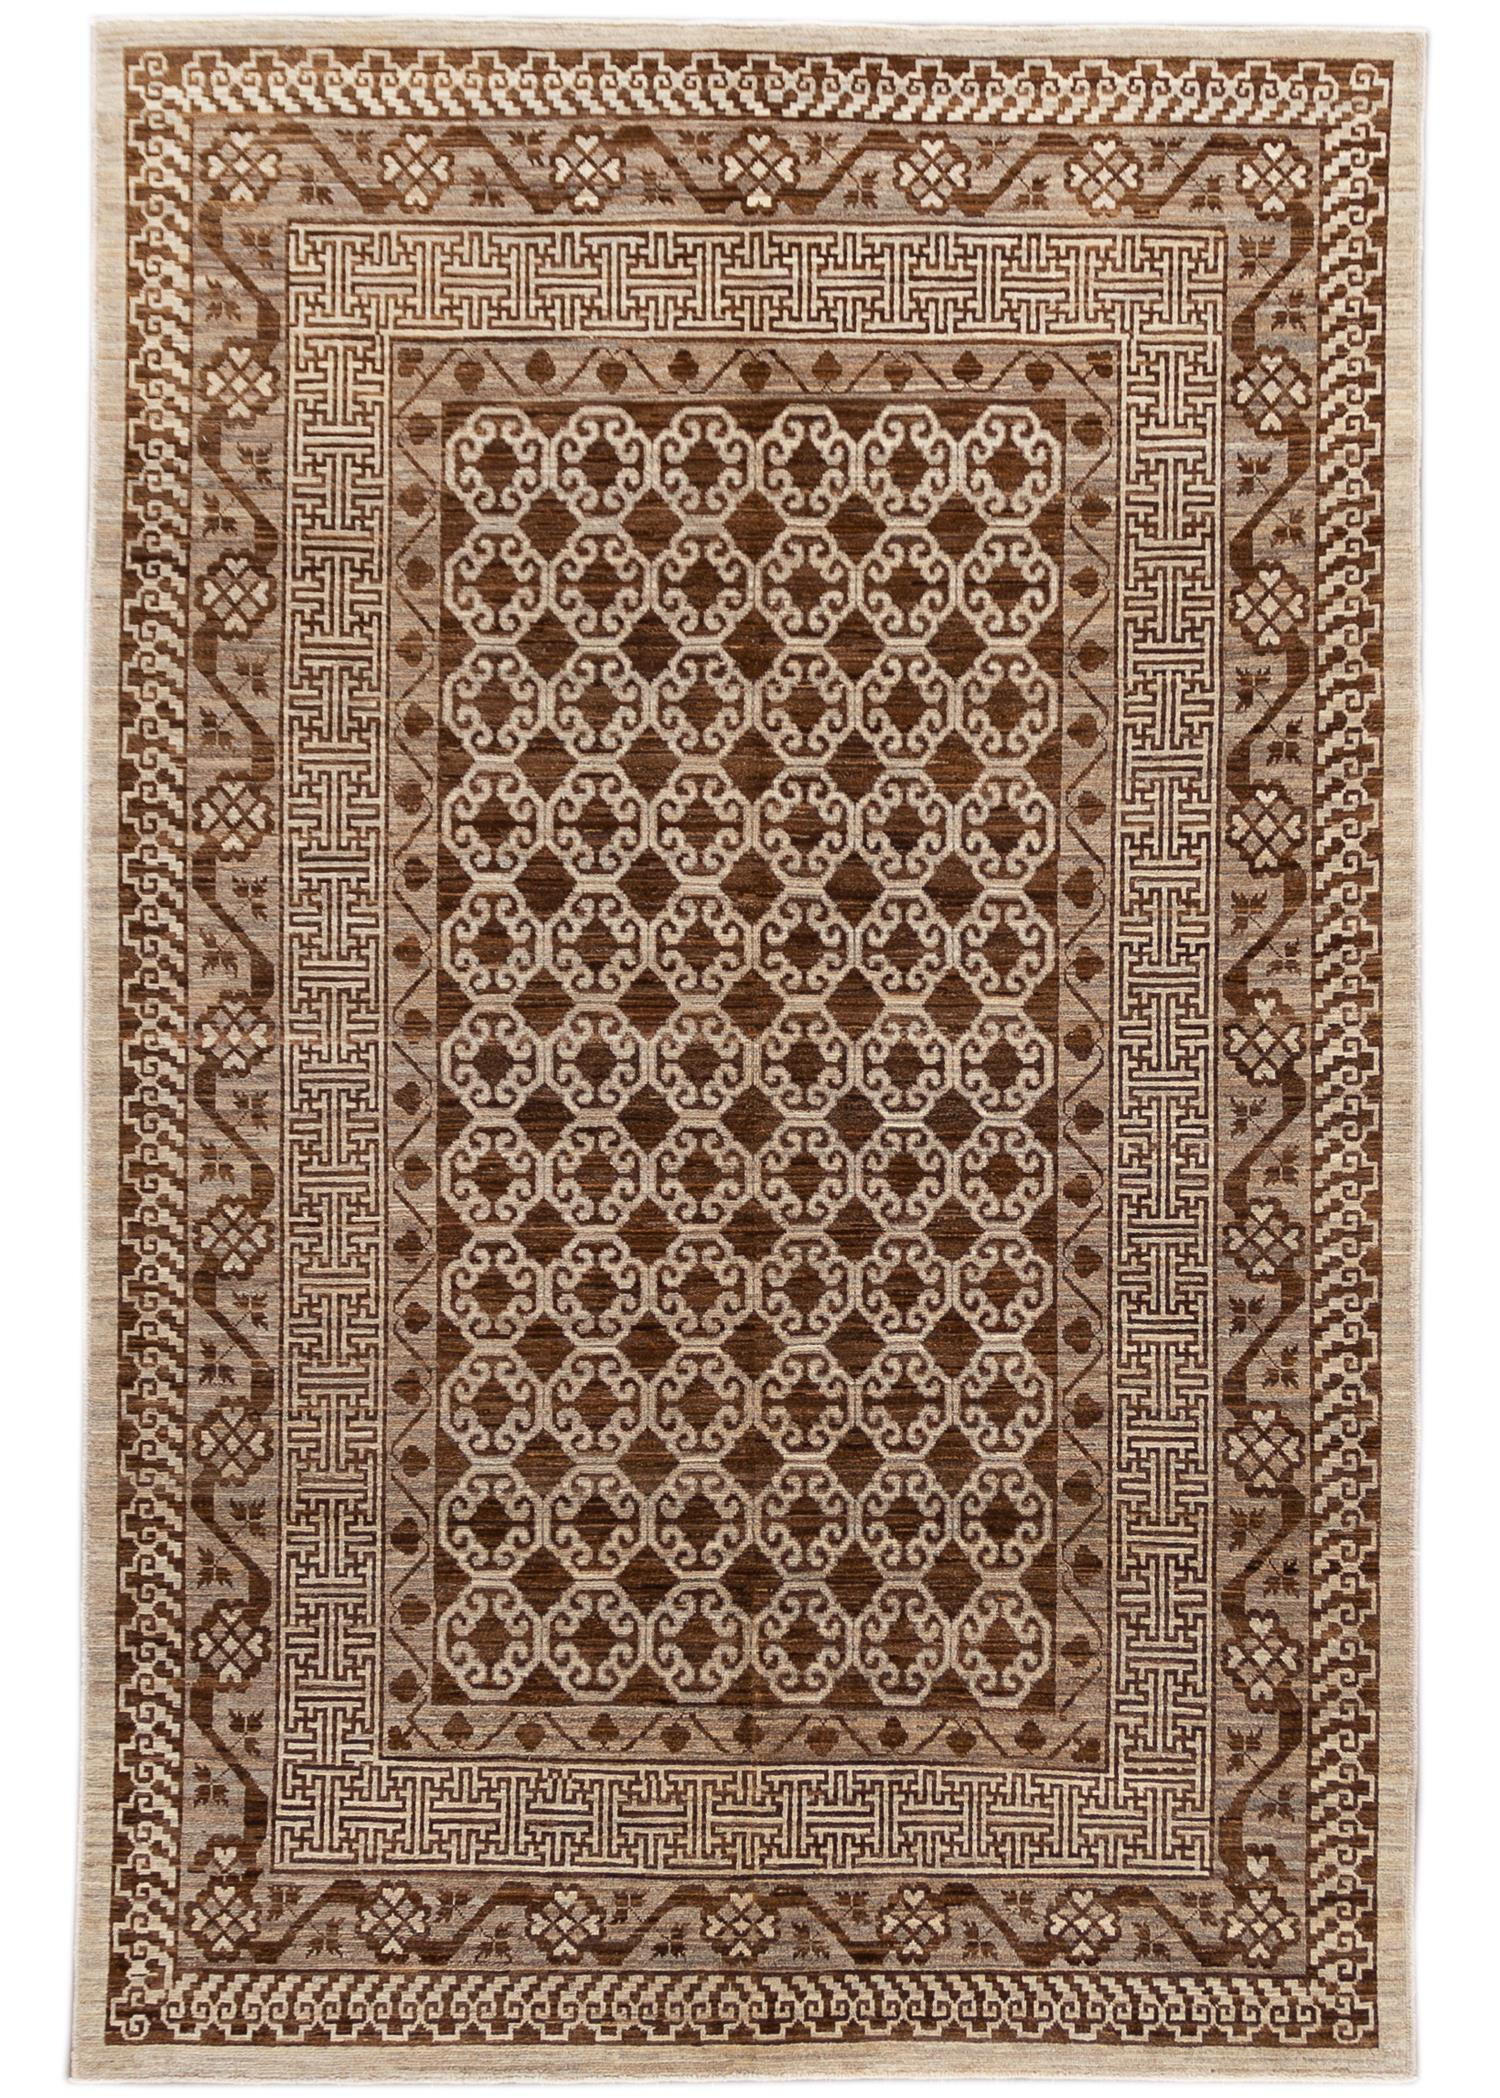 Contemporary Brown Khotan-Style Wool Area Rug 6' x 10'